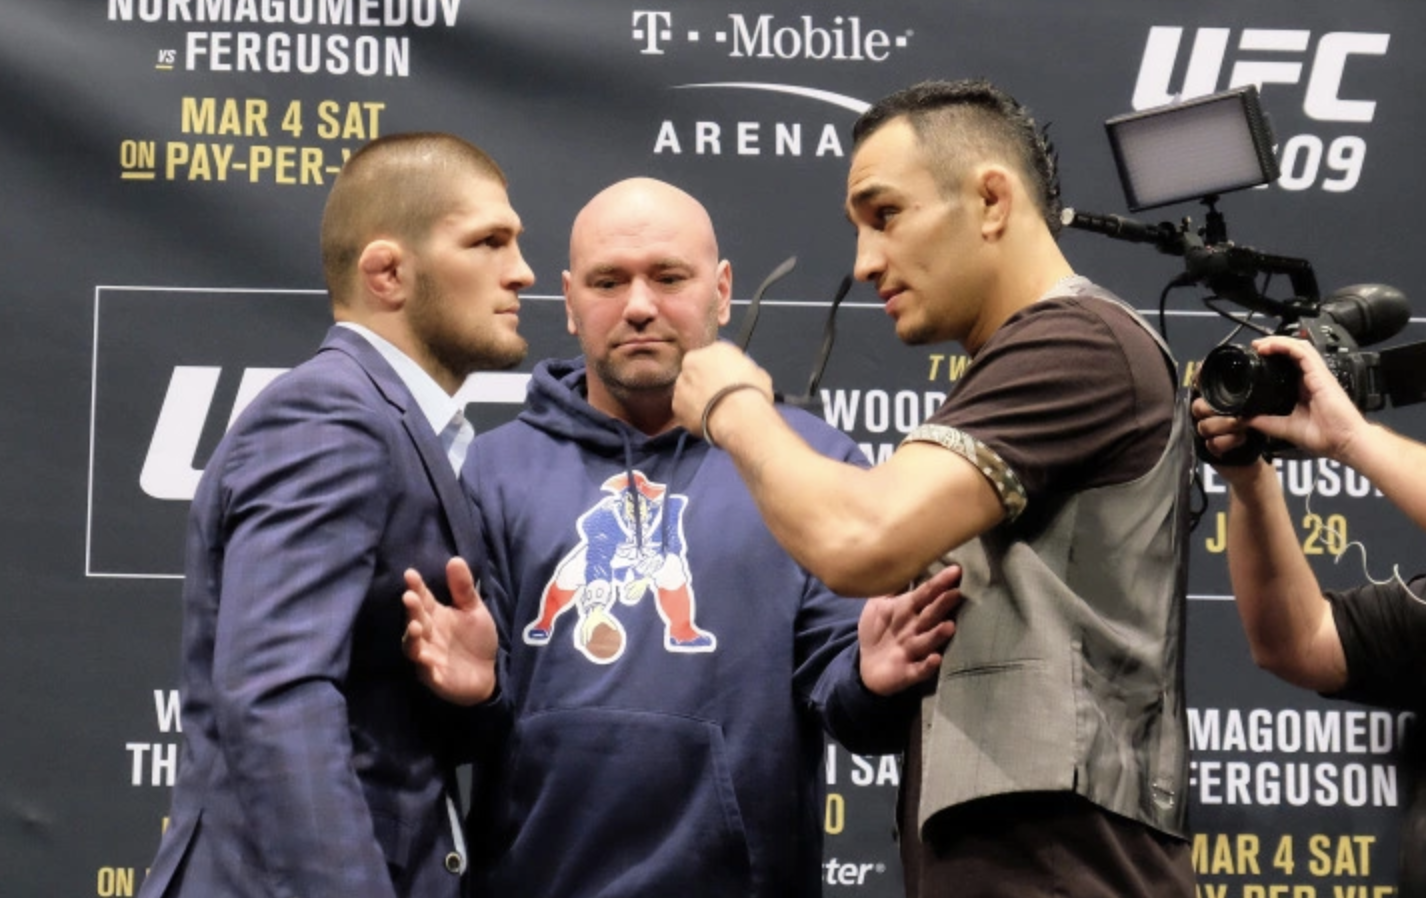 Tony Ferguson May Never Fight Again After UFC 223 According To His Opponent's Manager